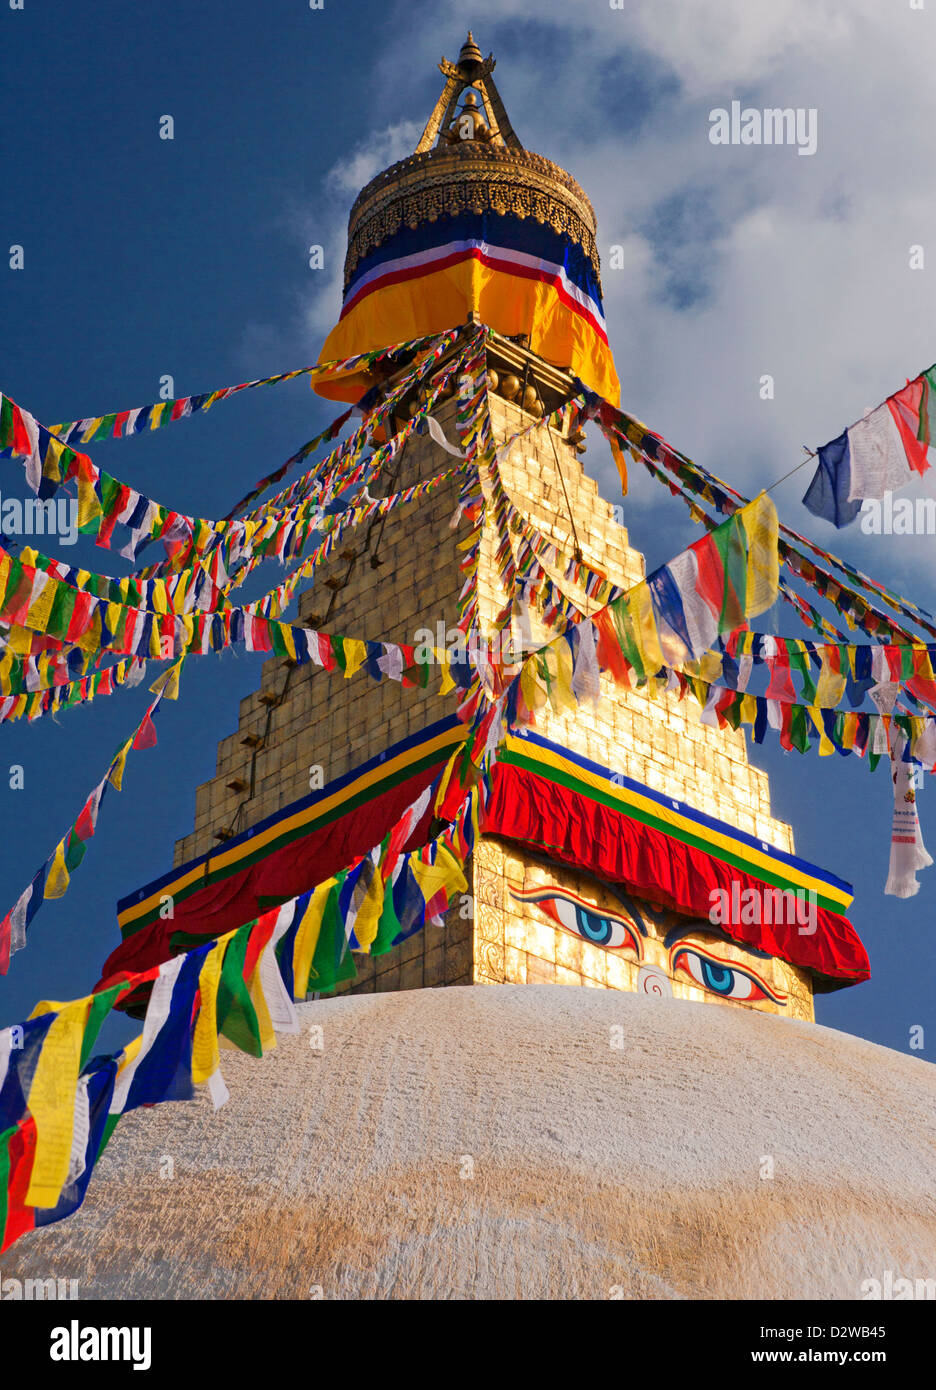 Buddhist stupa of Boudhanath in Kathmandu, Nepal is the largest stupa in the world. - Stock Image